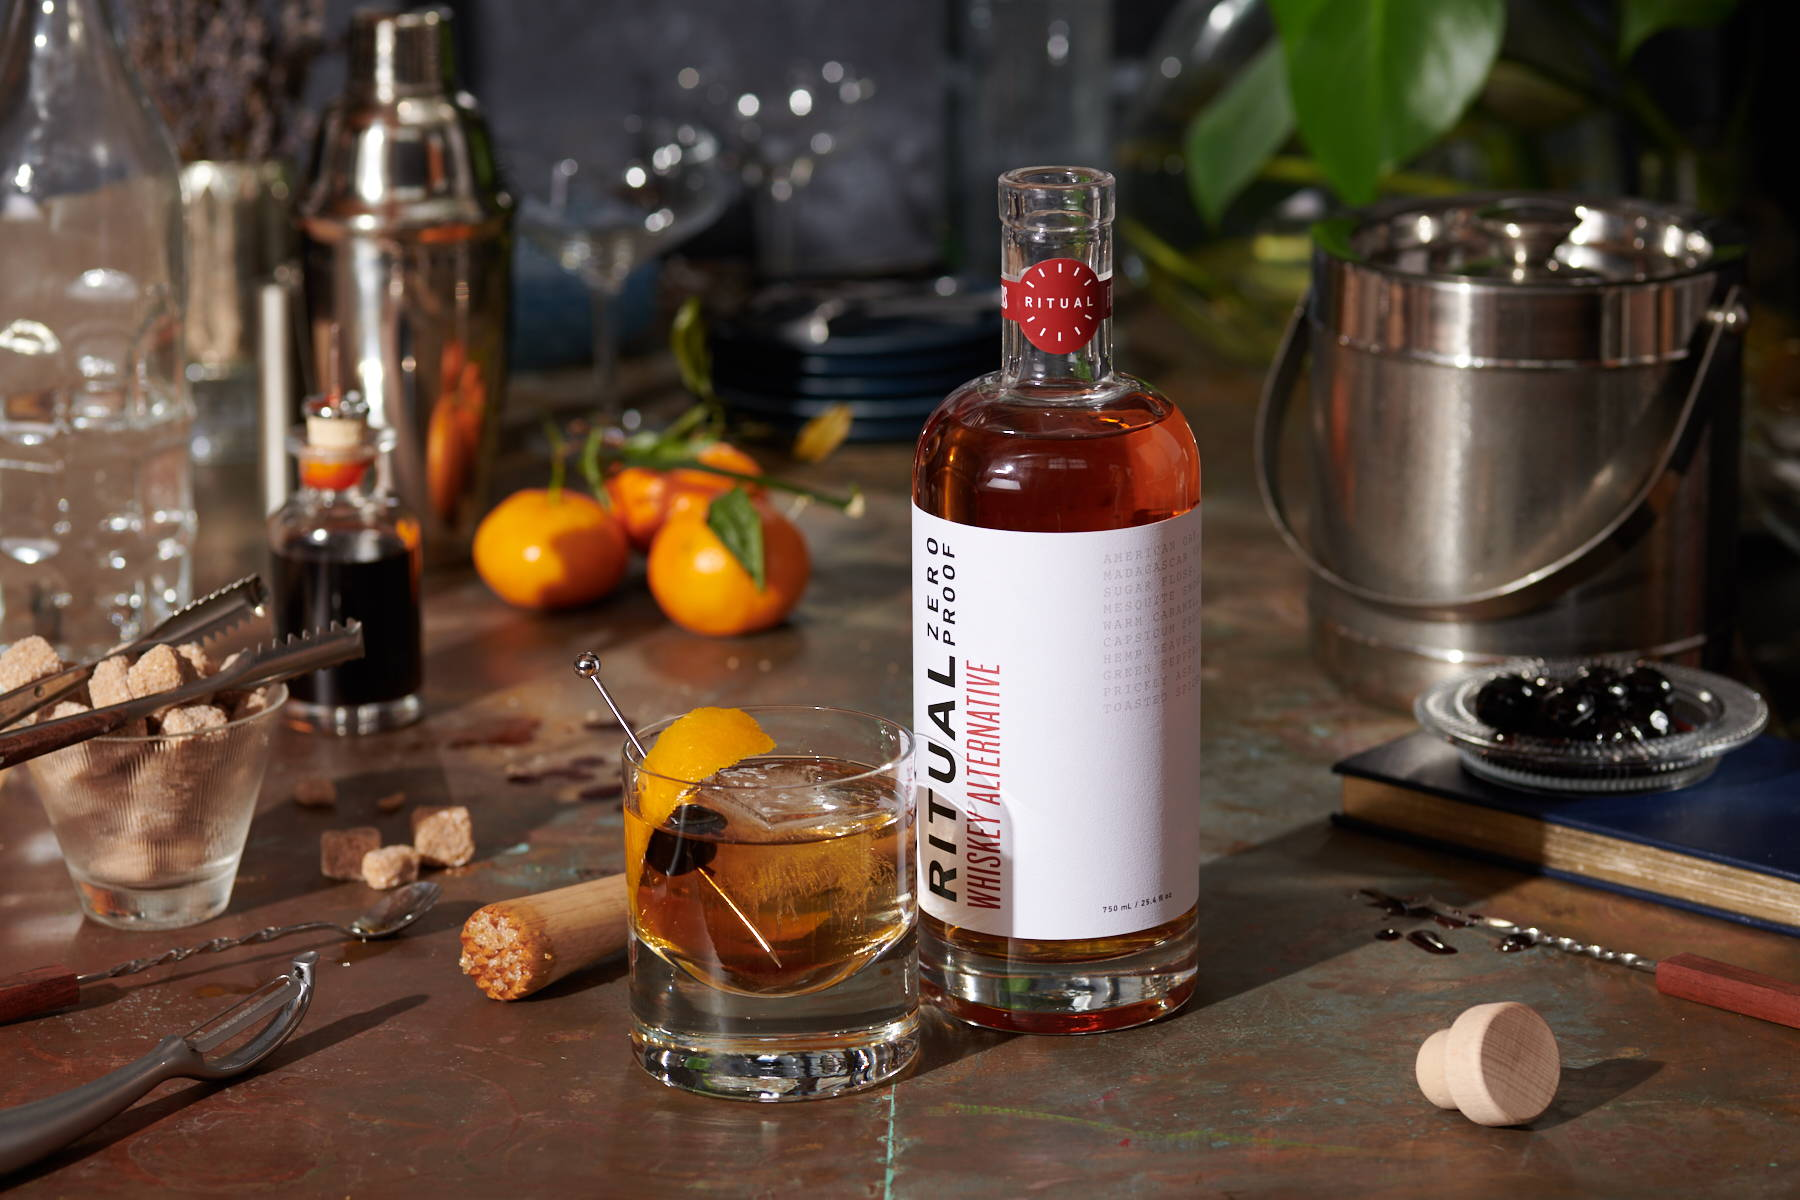 A spirit-free Old Fashioned, with oranges and bar accessories, next to a bottle of Ritual non-alcoholic whiskey alternative.